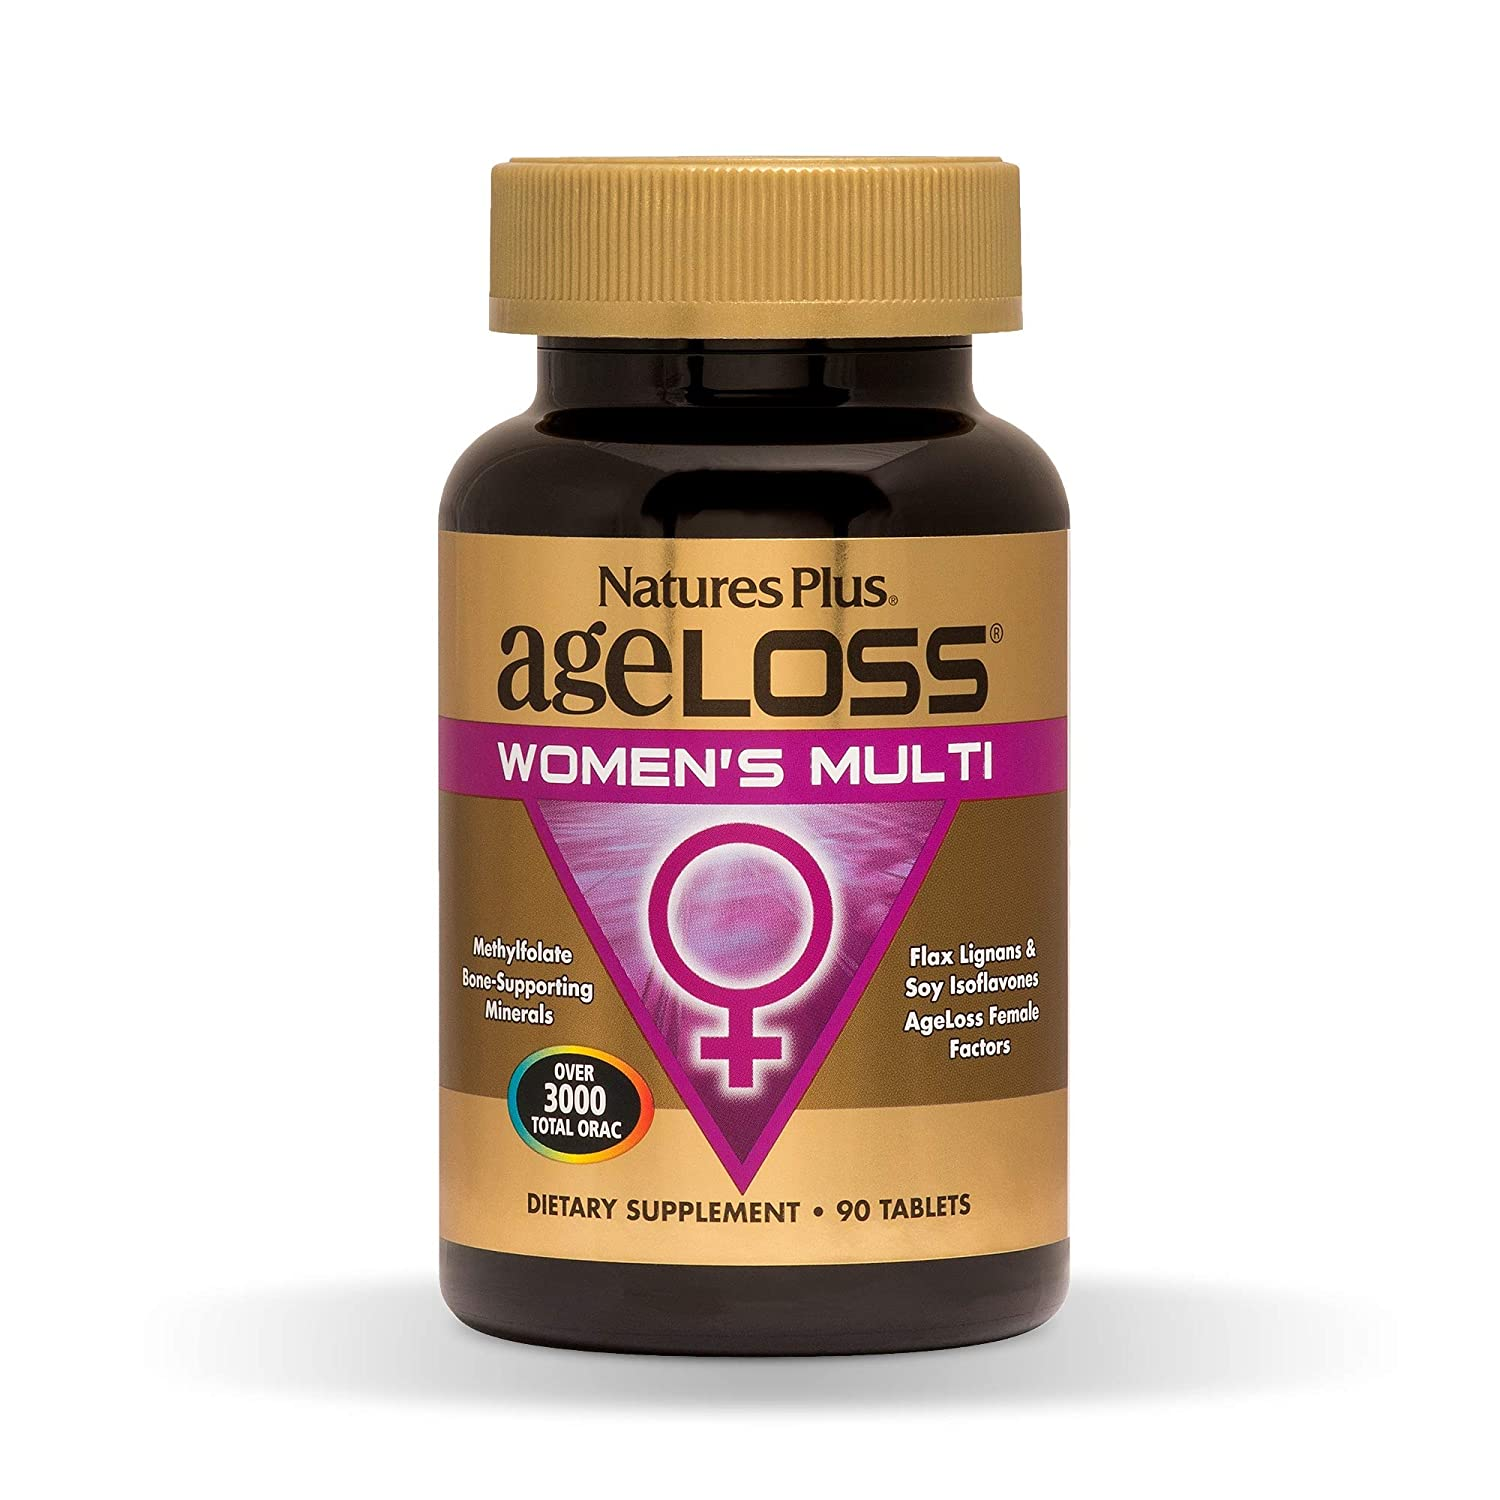 NaturesPlus AgeLoss Womens Multi – 90 Tablets – Anti-Aging Multivitamin Mineral Supplement, Menstrual Menopausal Support, Antioxidant, Anti-Inflammatory – Gluten-Free – 30 Servings